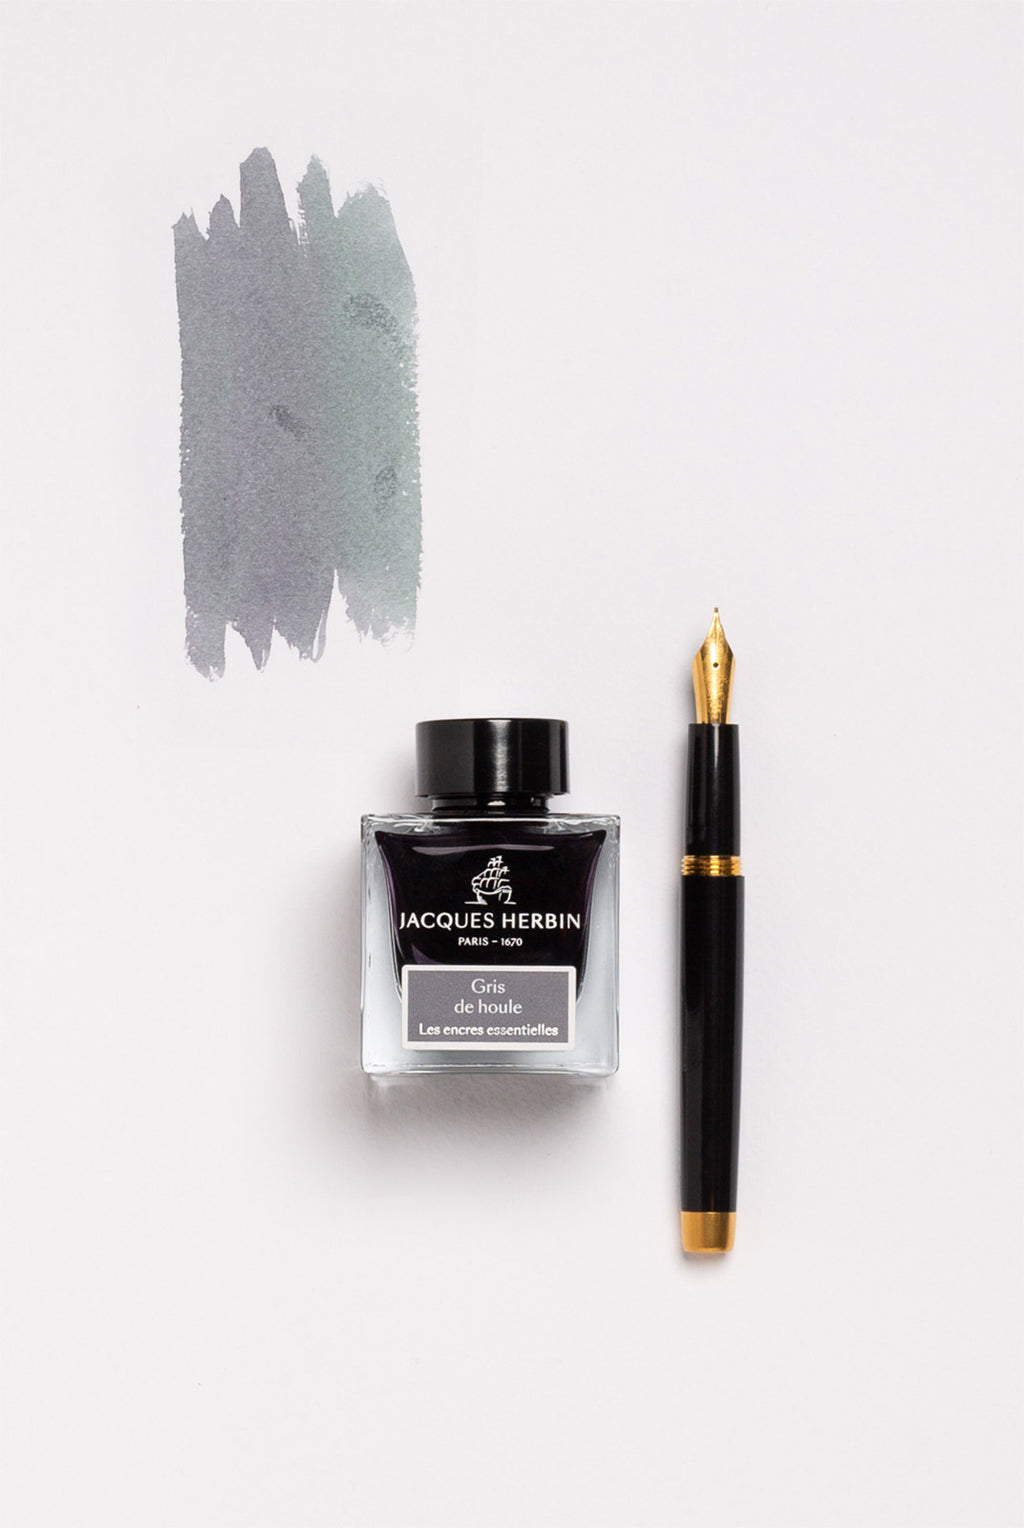 Jacques Herbin - The Essentials - 50ml Bottle Ink - Swell Grey (Gris de houle)